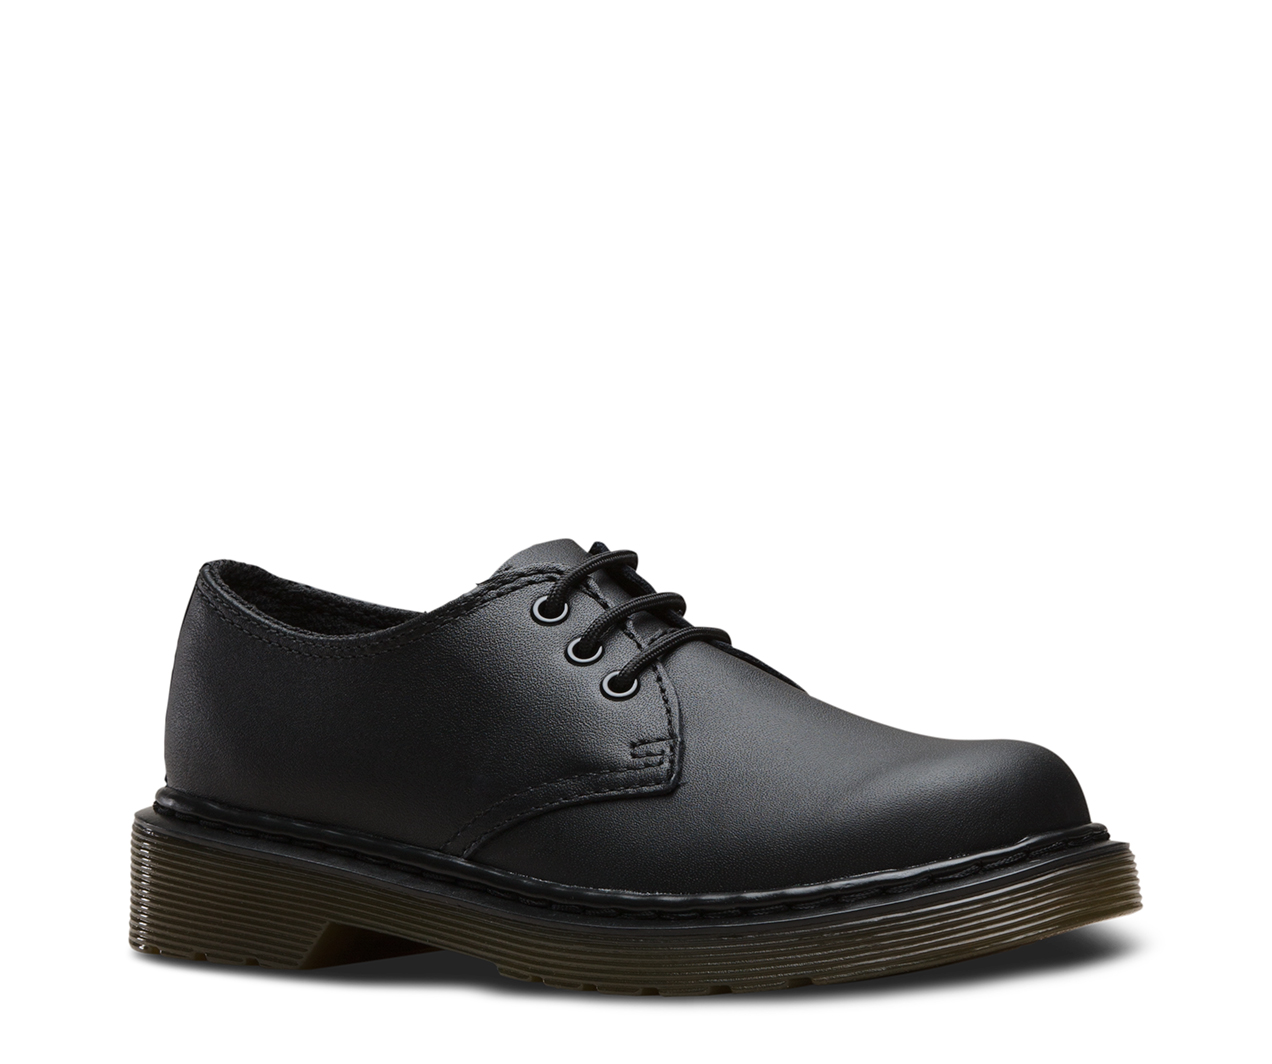 Oxford Lace up Shoes for Women On Sale, Black, Leather, 2017, 3.5 6.5 Dr. Martens